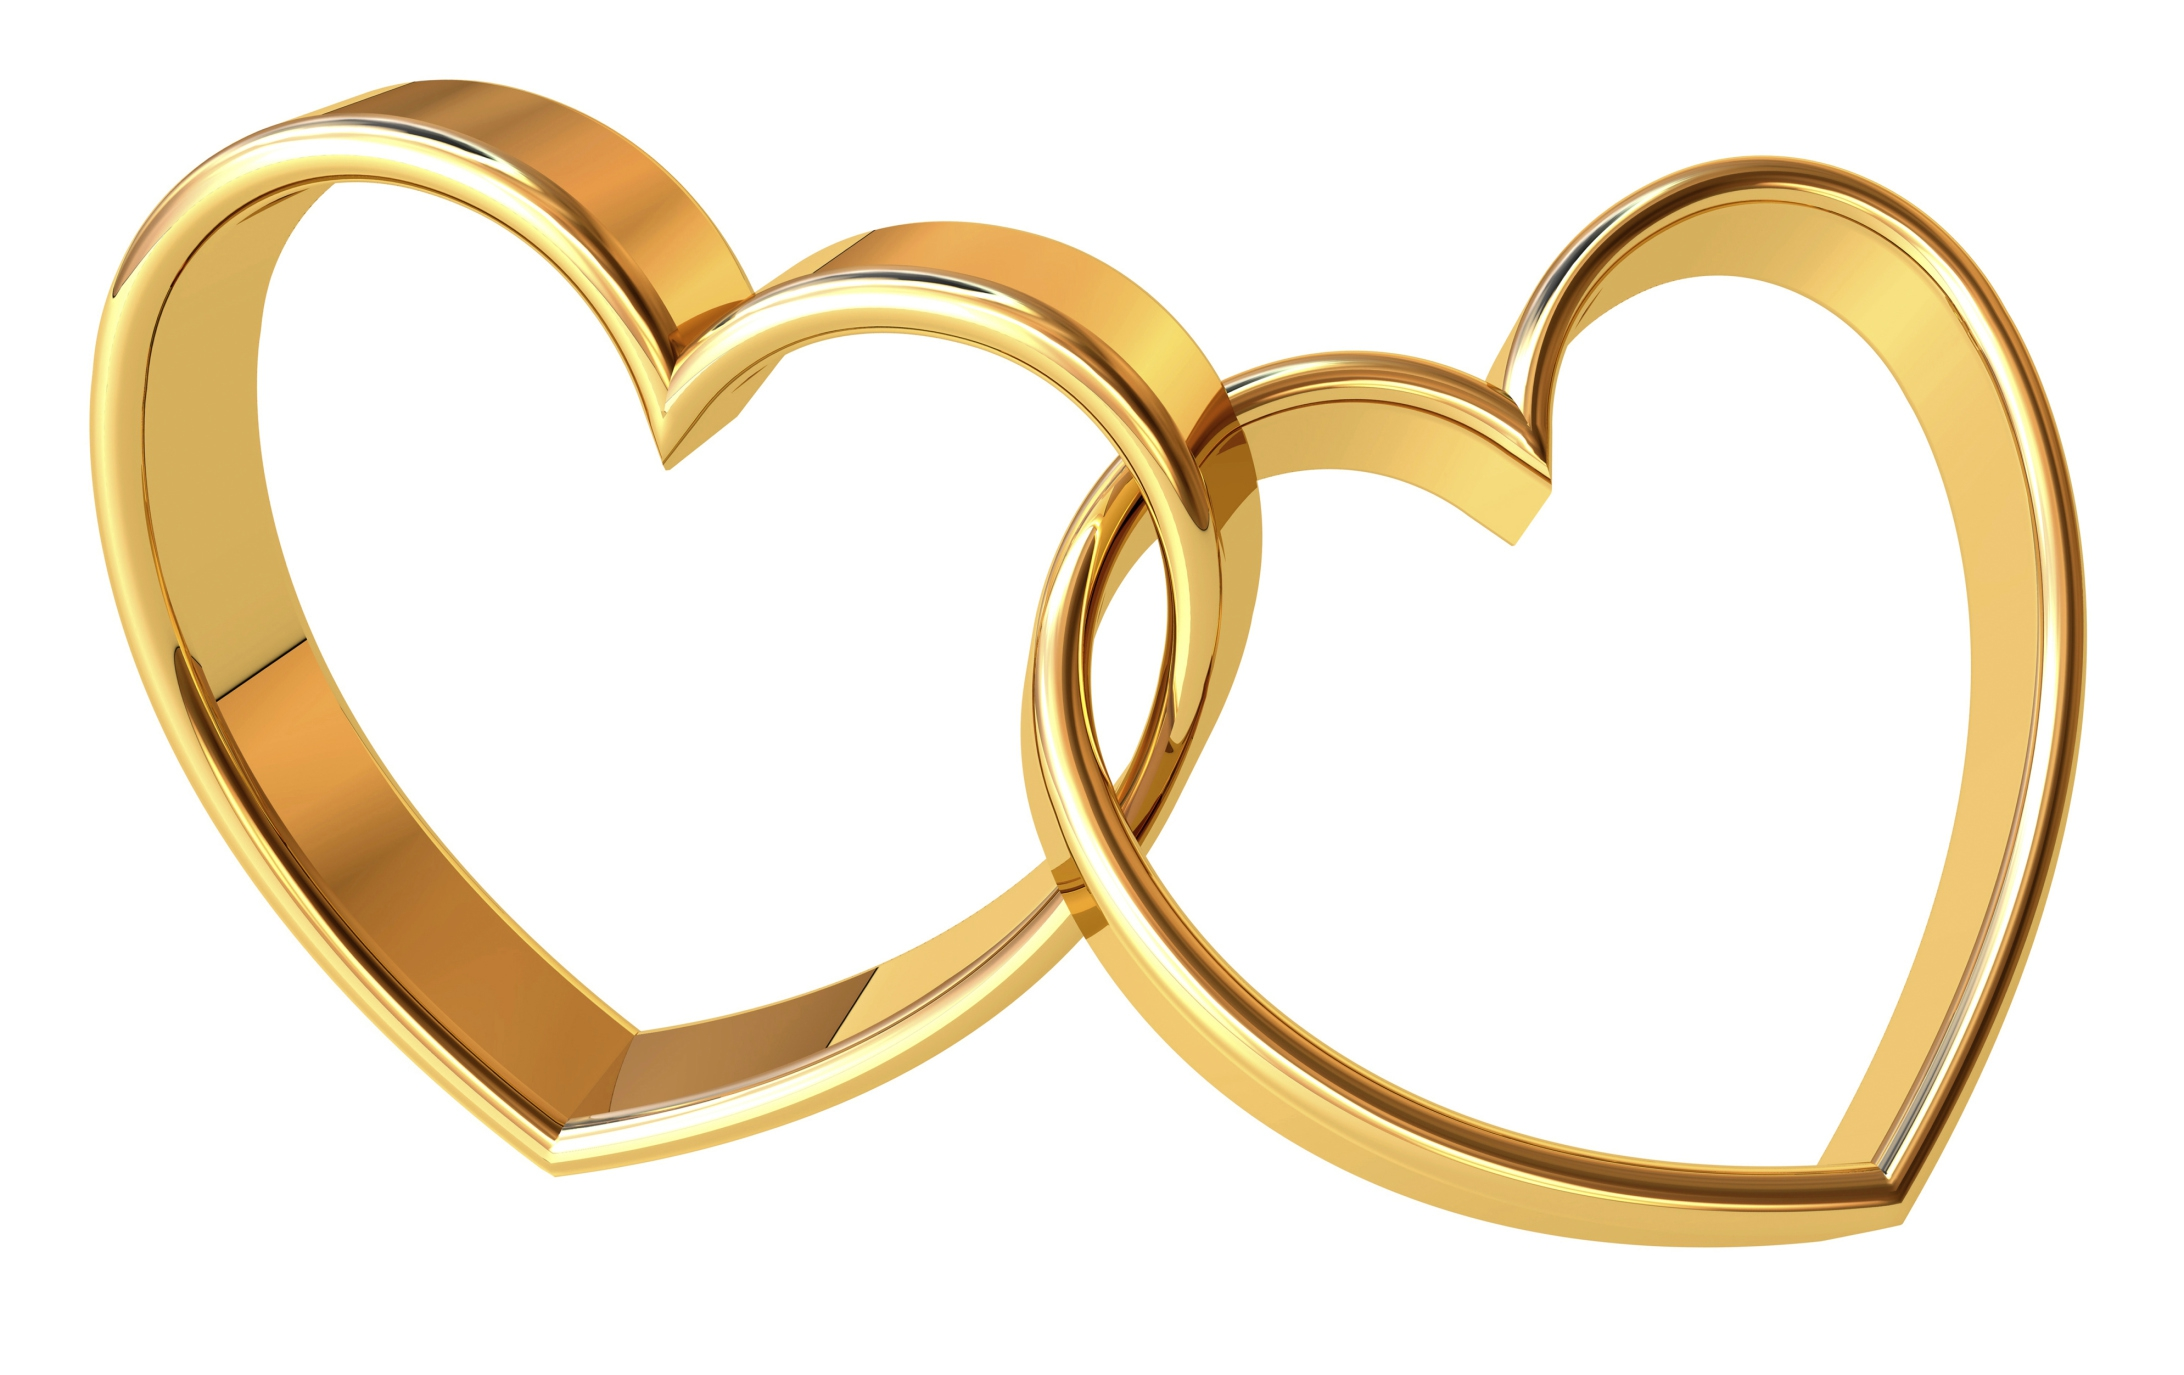 Wedding ring engagement clipart free cliparts and 3